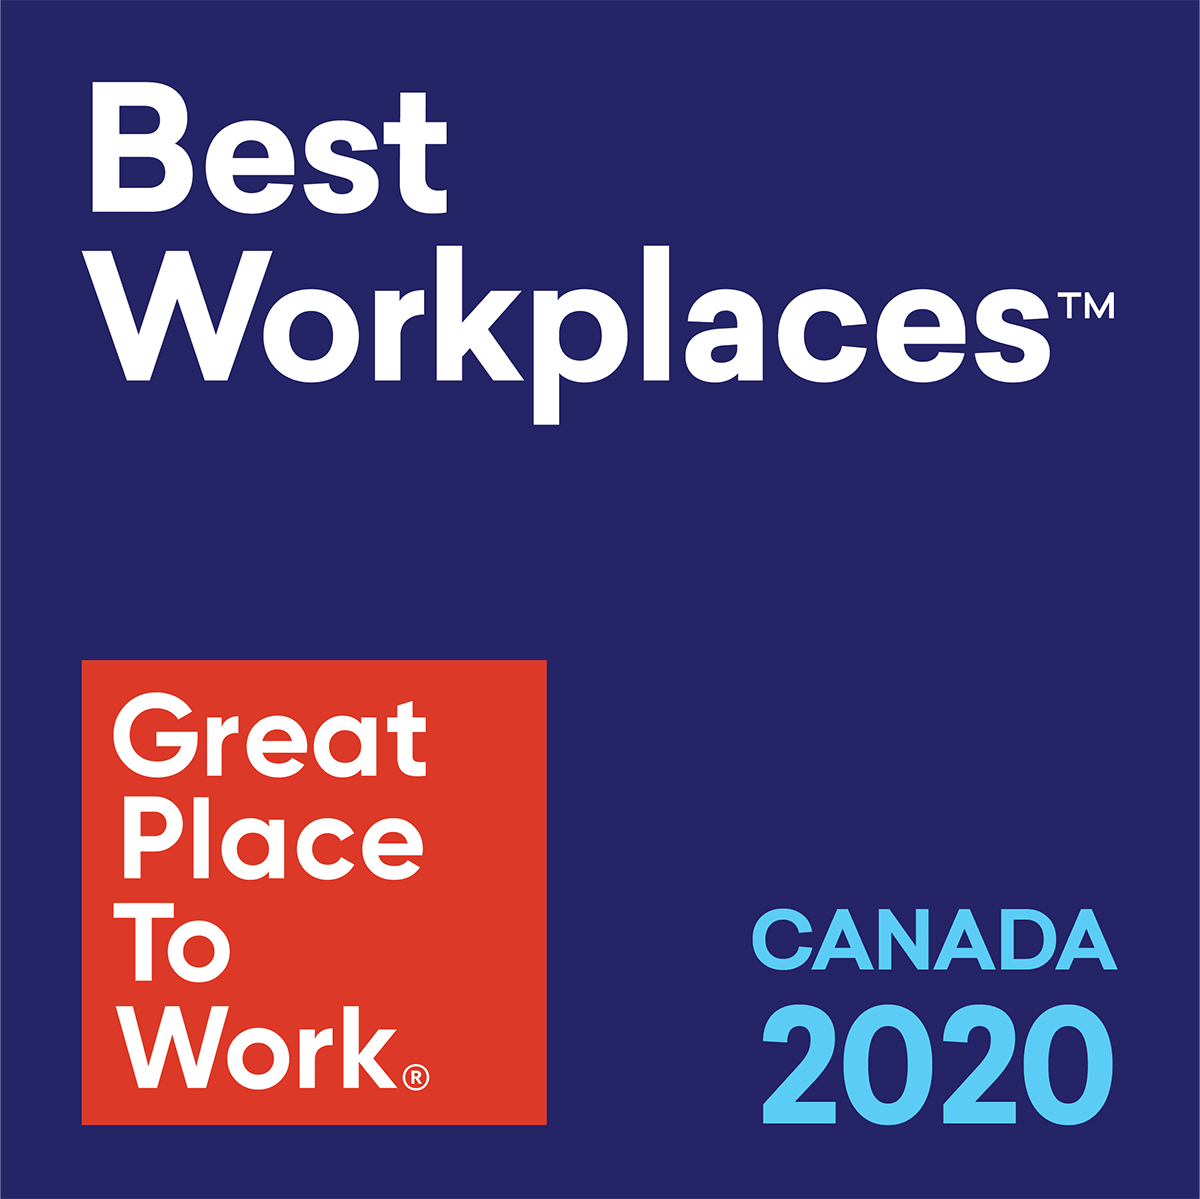 Great Place To Work 2020: 100-999 Employees